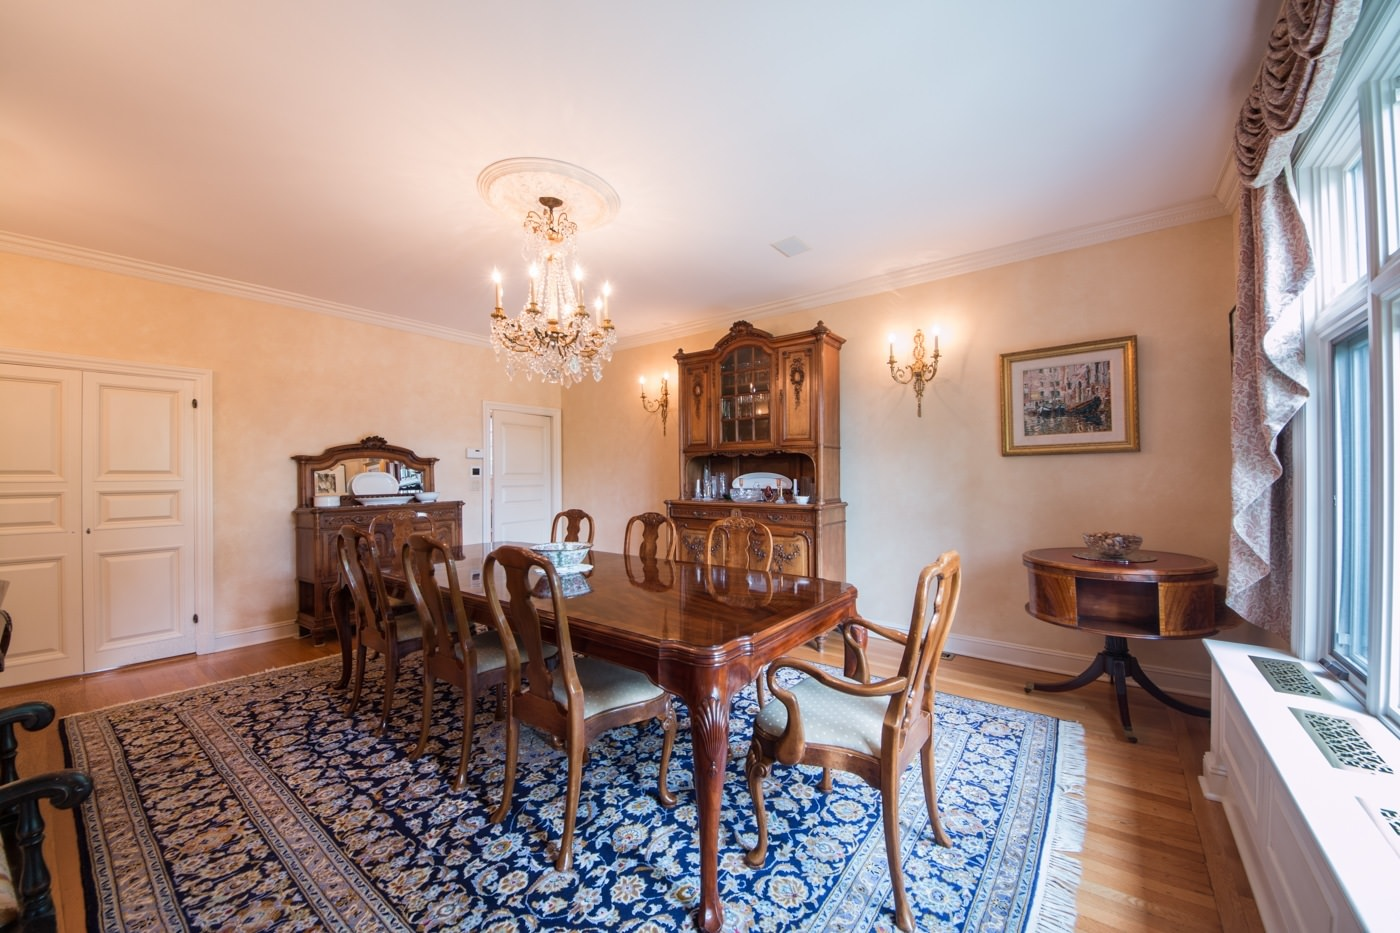 Kimball dining room furniture